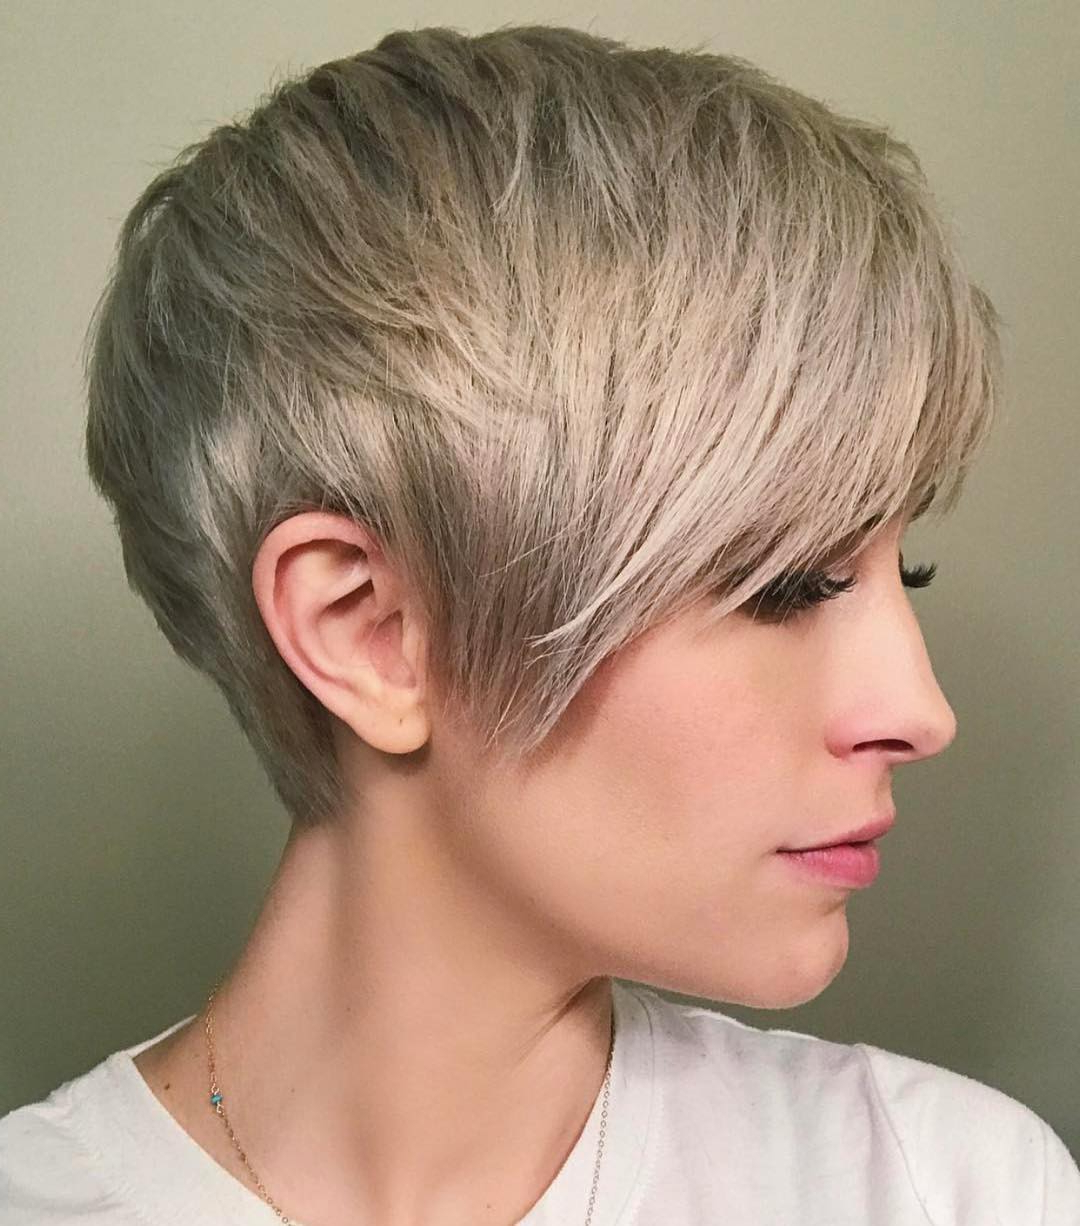 10 Best Short Straight Hairstyle Trends 2019 Within Two Tone Spiky Short Haircuts (View 1 of 20)